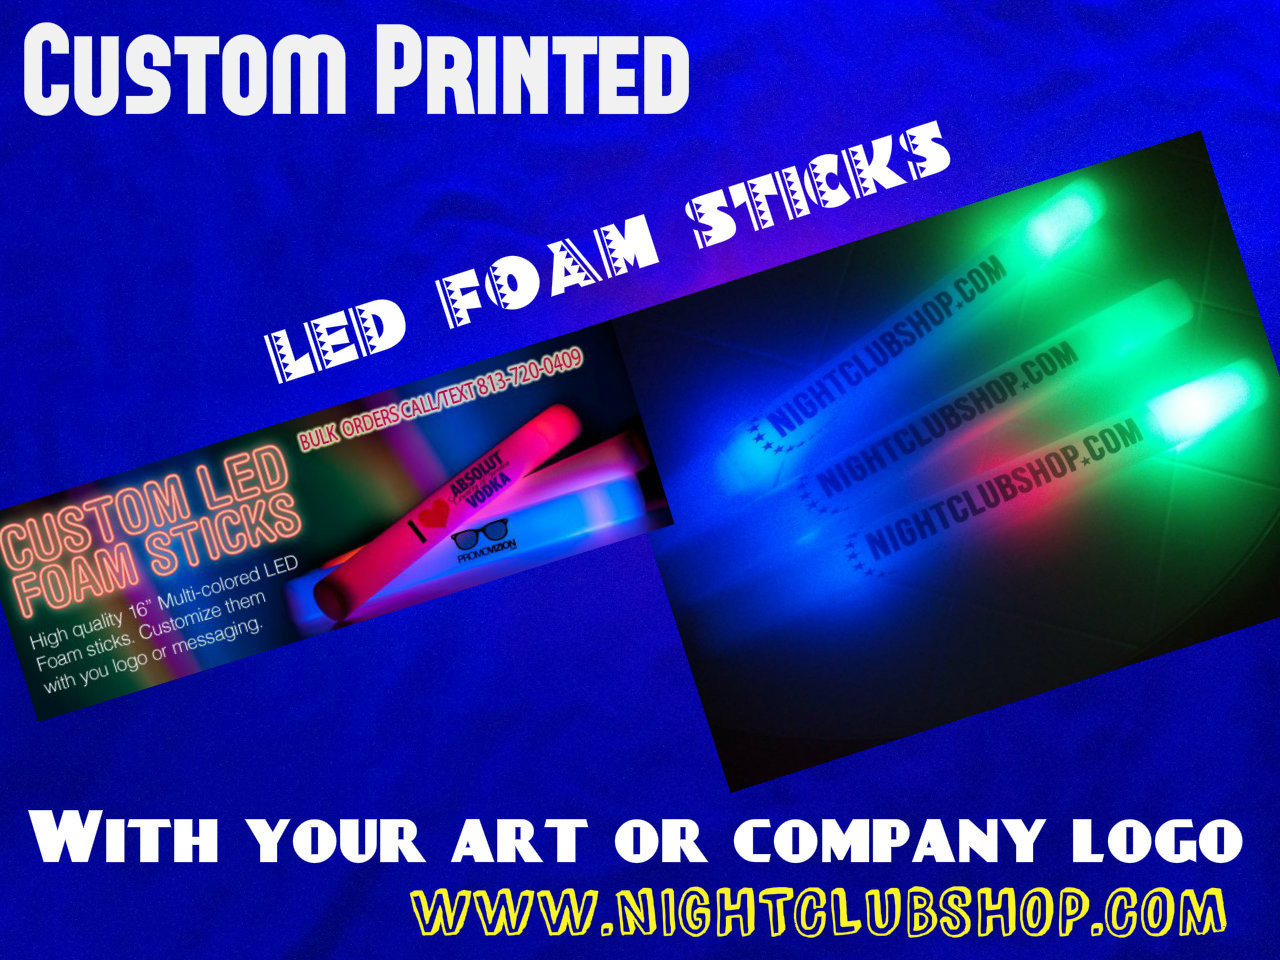 16 inch, foamstick, foam, stick, led, baton, strobe, color, party, custom, event, venue, nightclub, supplier, edm, festival, rave, supplies, club, bar, glow, personalized